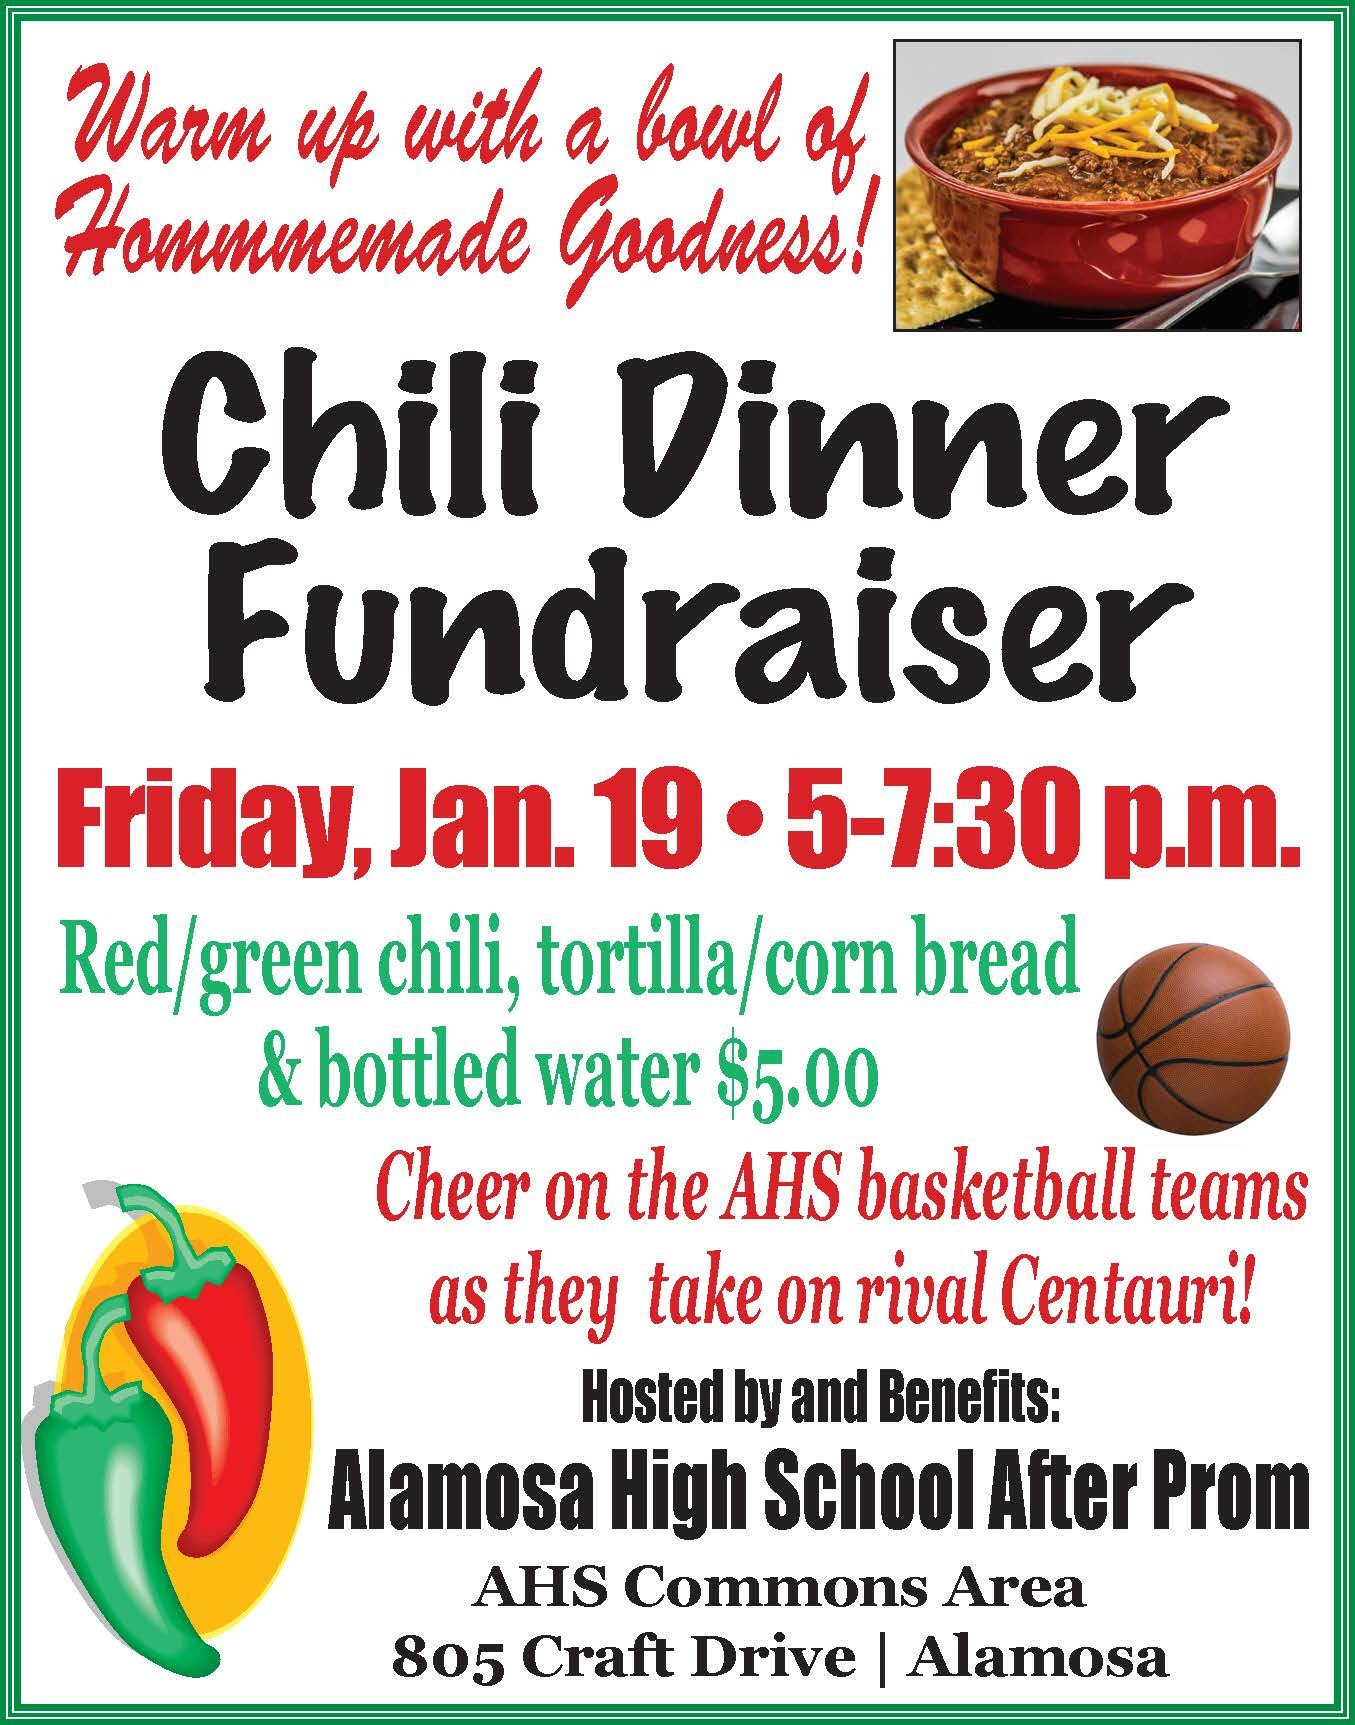 After Prom Chili Dinner Fundraiser